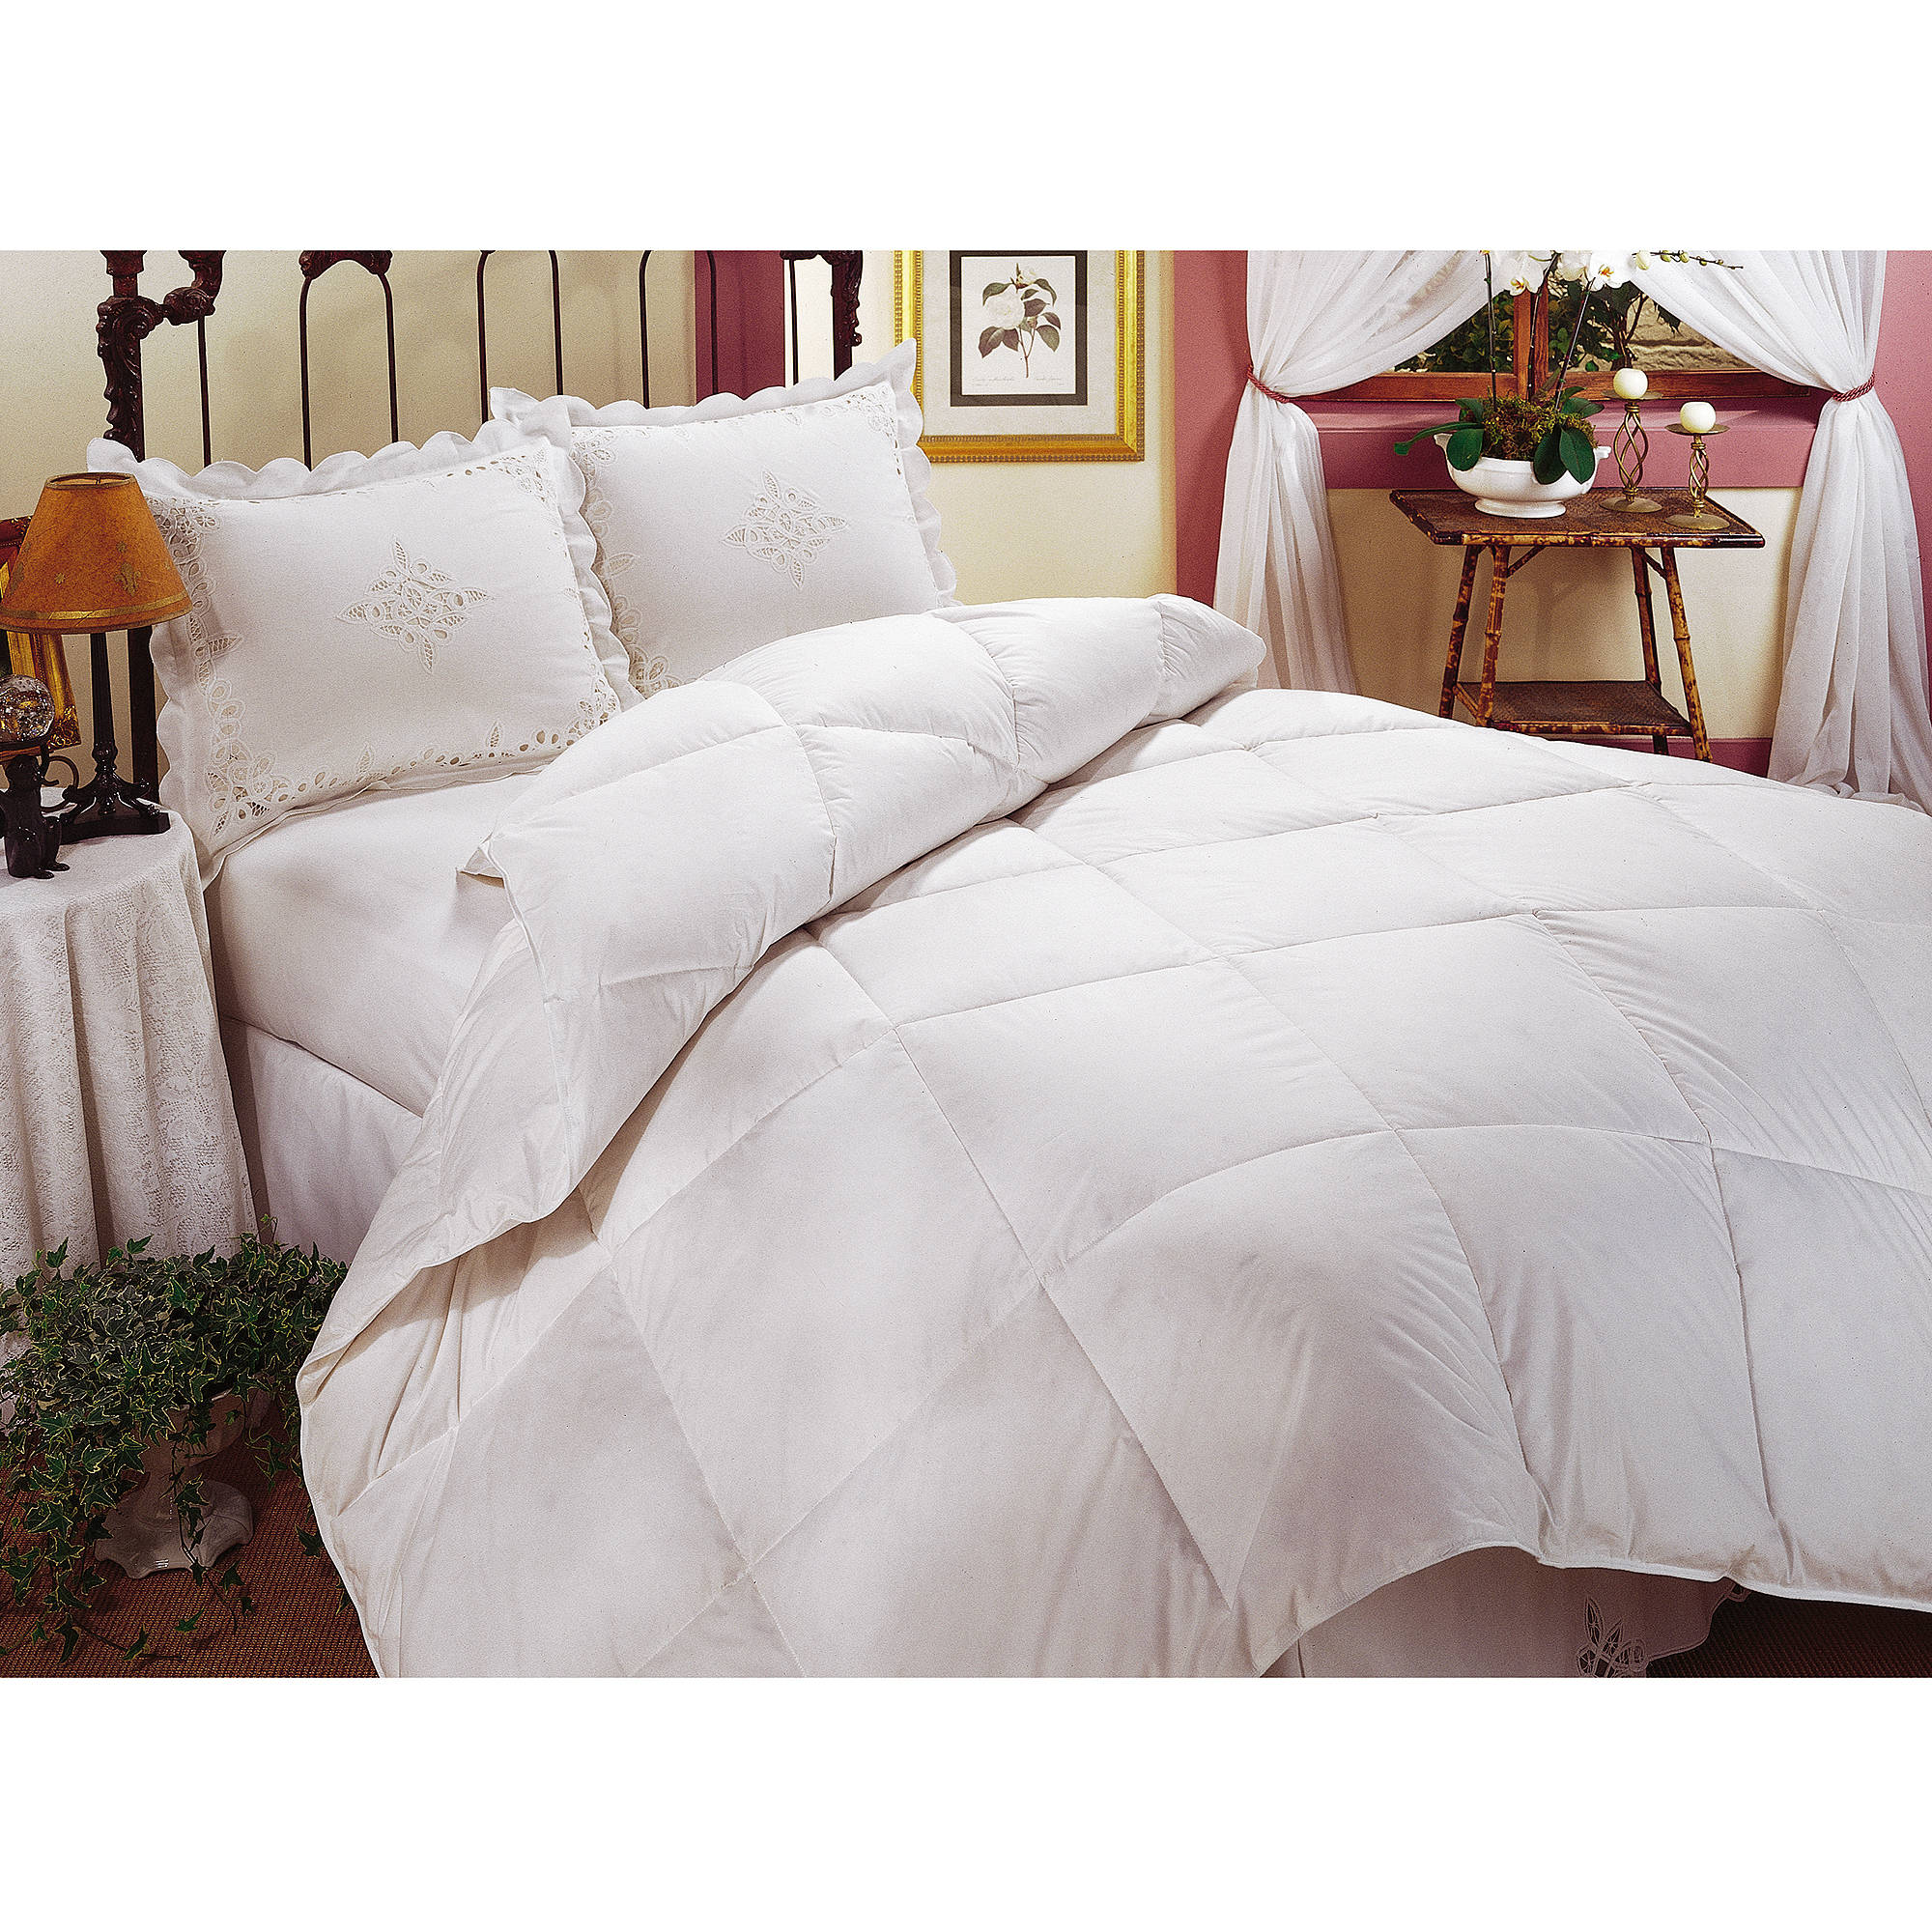 luxury reviews best white comforters comforter goose down pacific coast